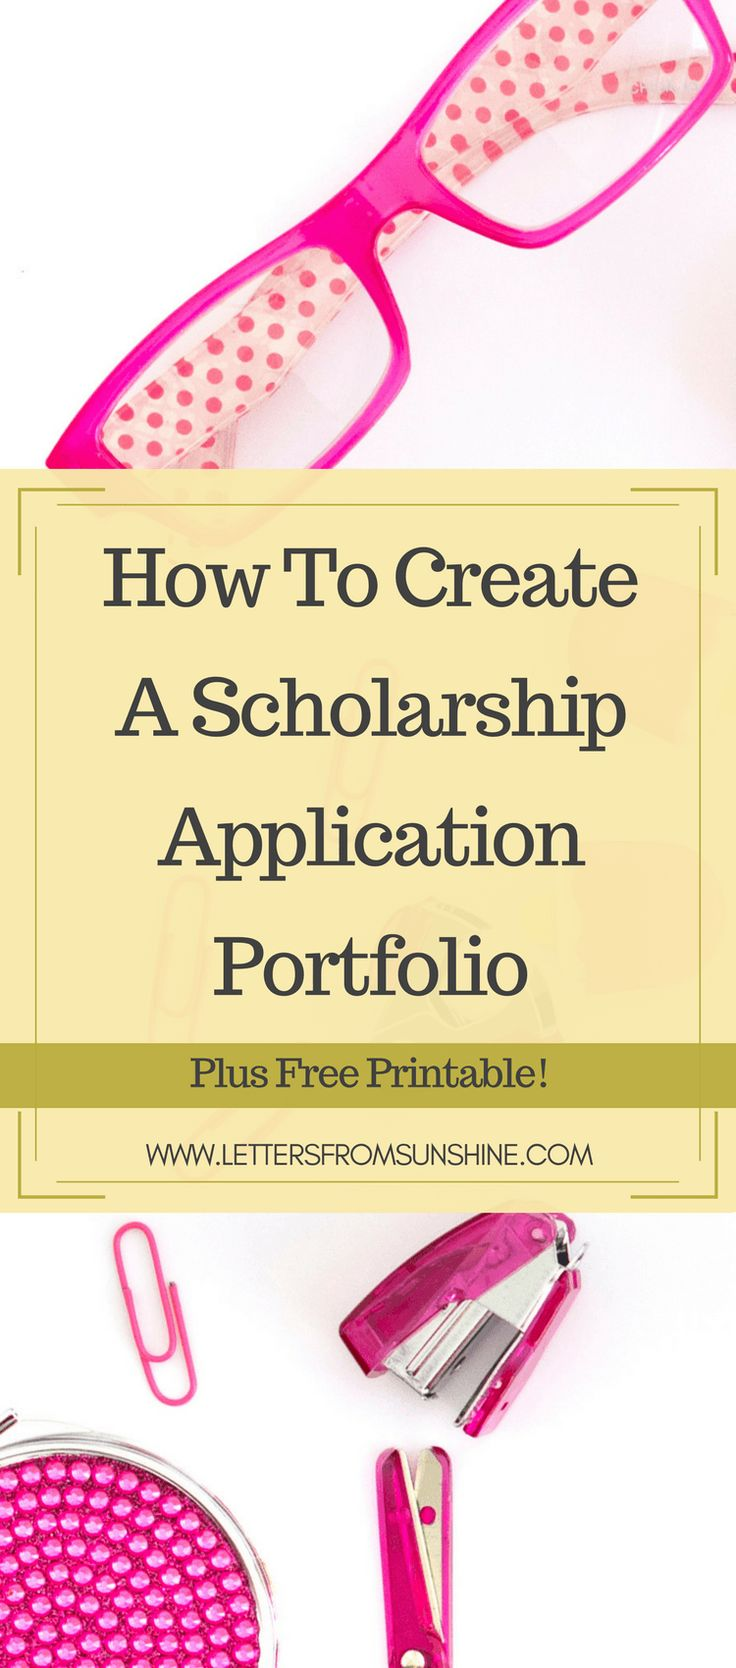 Applying to scholarships can be extremely overwhelming, but it doesn't have to be if you have a prepared portfolio on hand! Today I am walking you through the steps of creating your own portfolio that will help you with applying to scholarships...and maybe even college! Letters From Sunshine   www.lettersfromsunshine.com